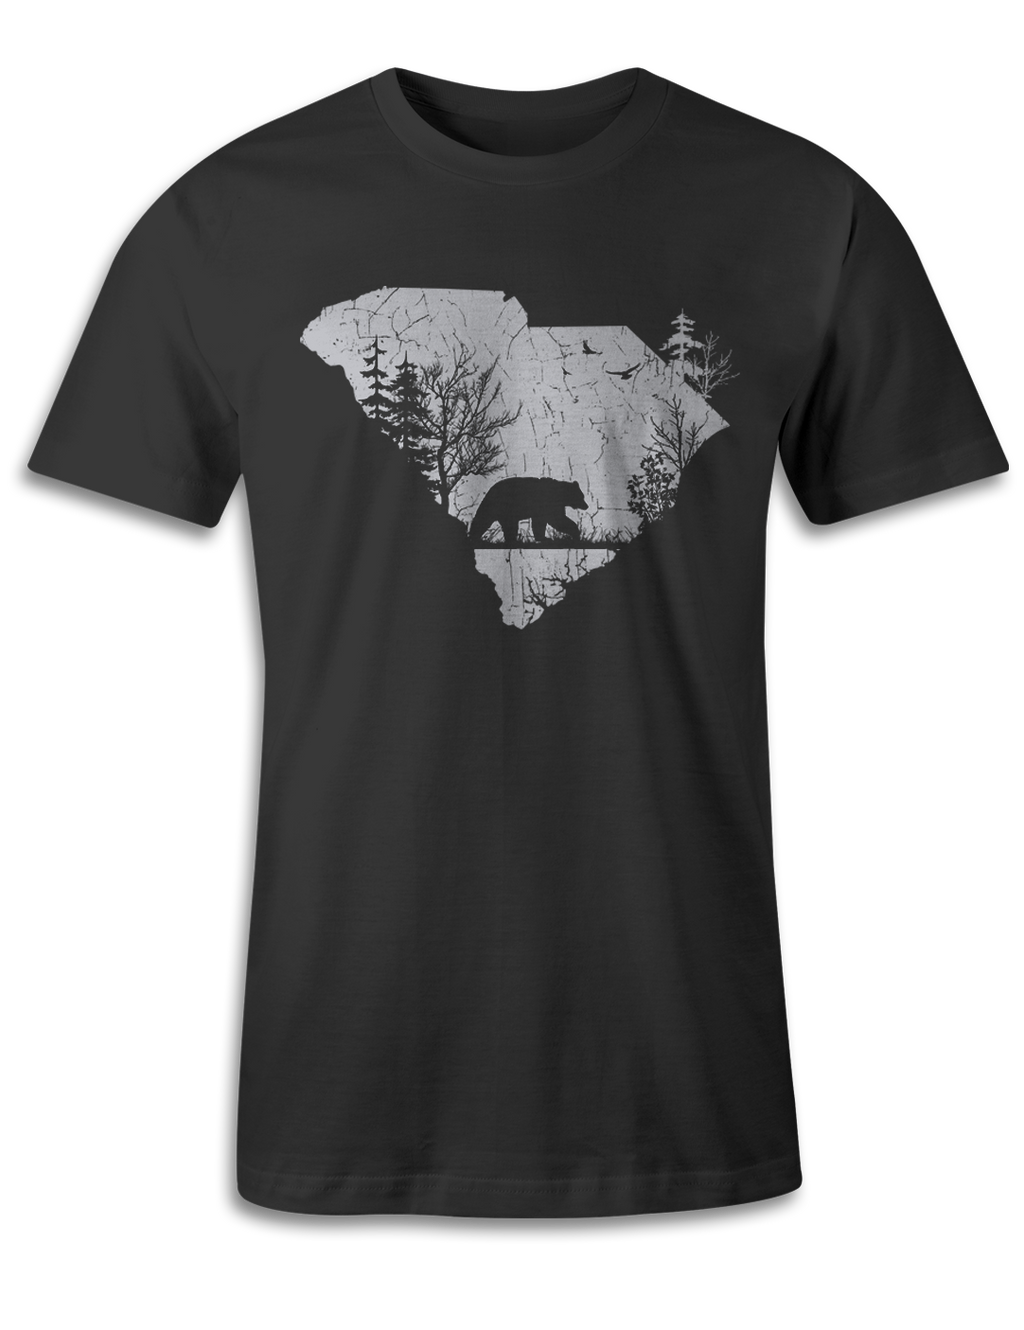 South Carolina - Animal In The Woods - Unisex Tee